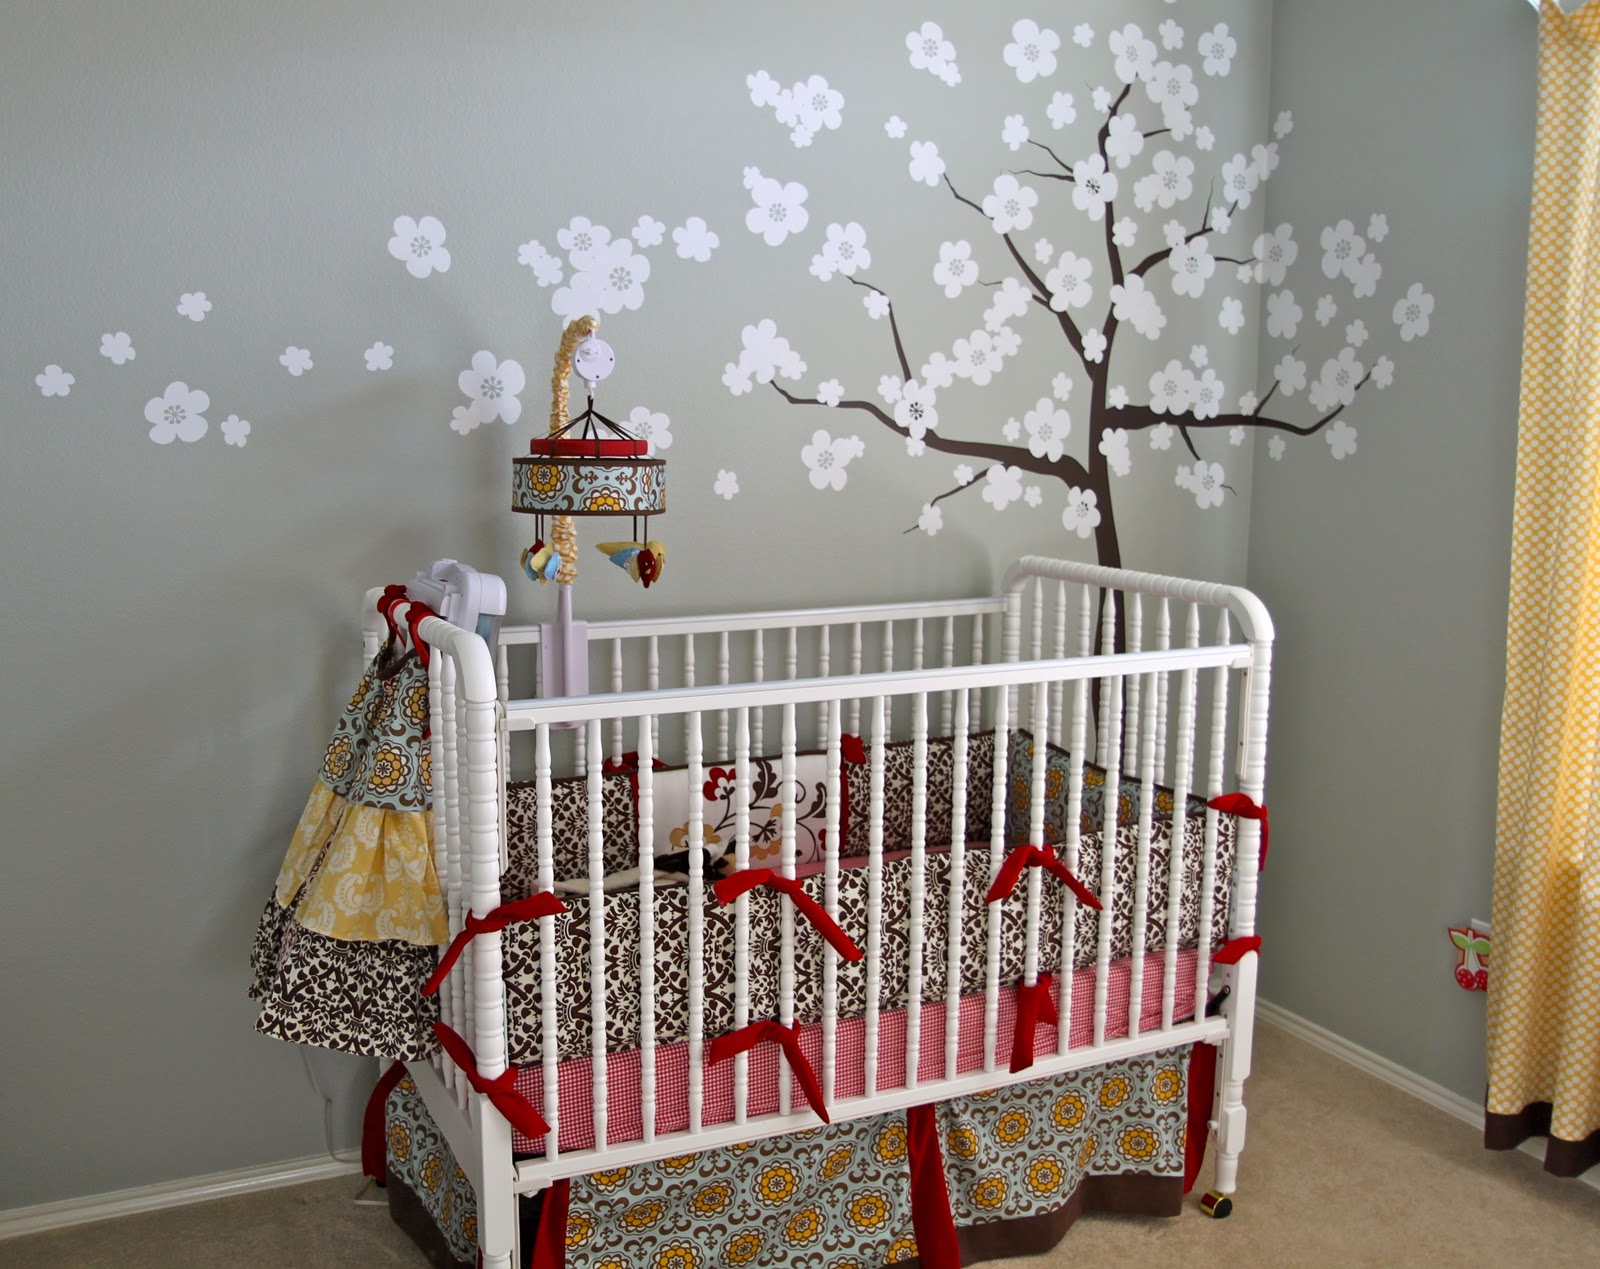 Baby nursery it 39 s quirky and so cute design dazzle for Baby girl room decoration ideas